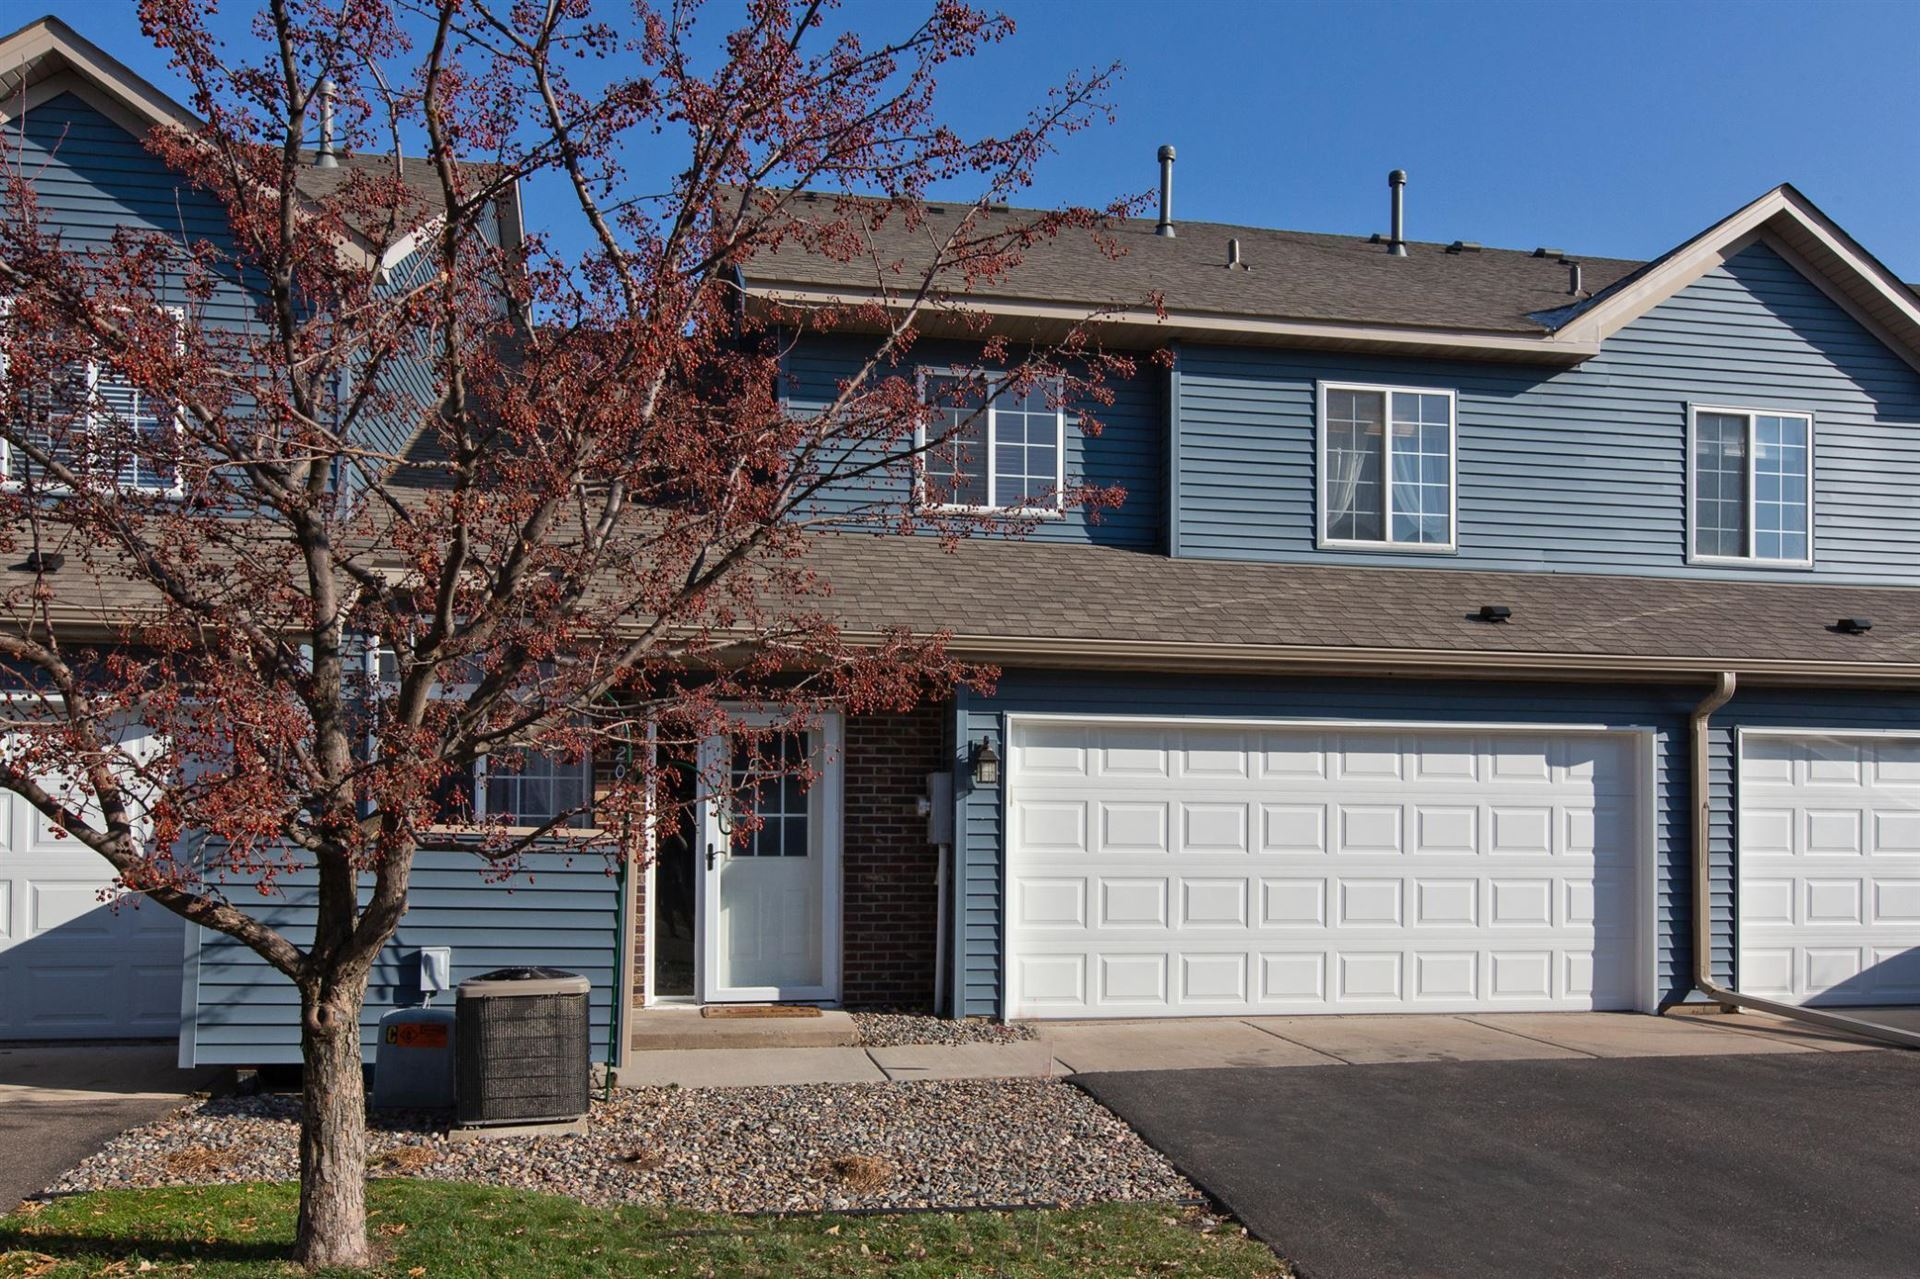 2023 Willow Circle, Centerville, MN 55038 - MLS#: 5687291